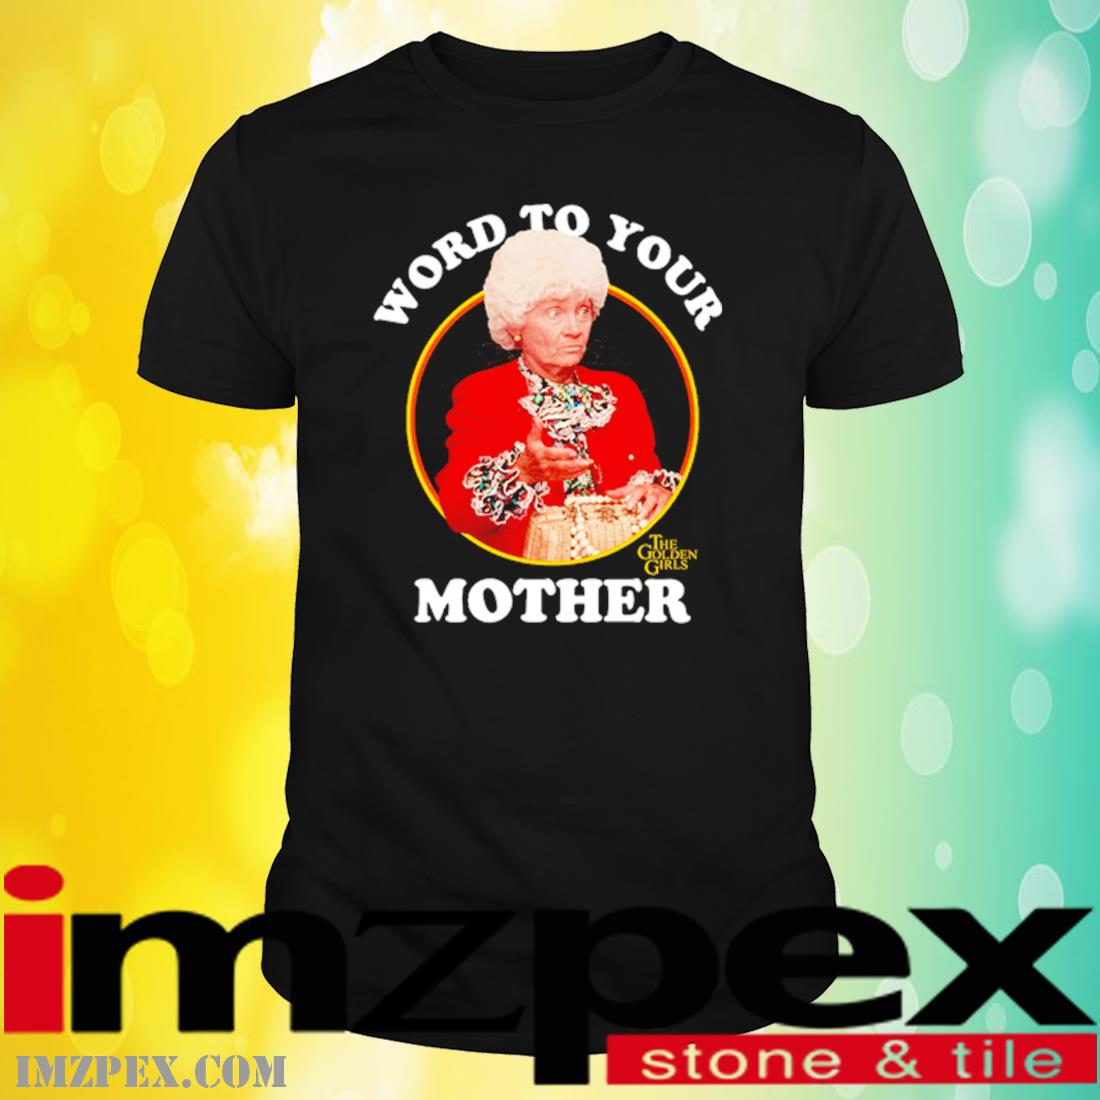 The Golden Girls Word To Your Mother Shirt